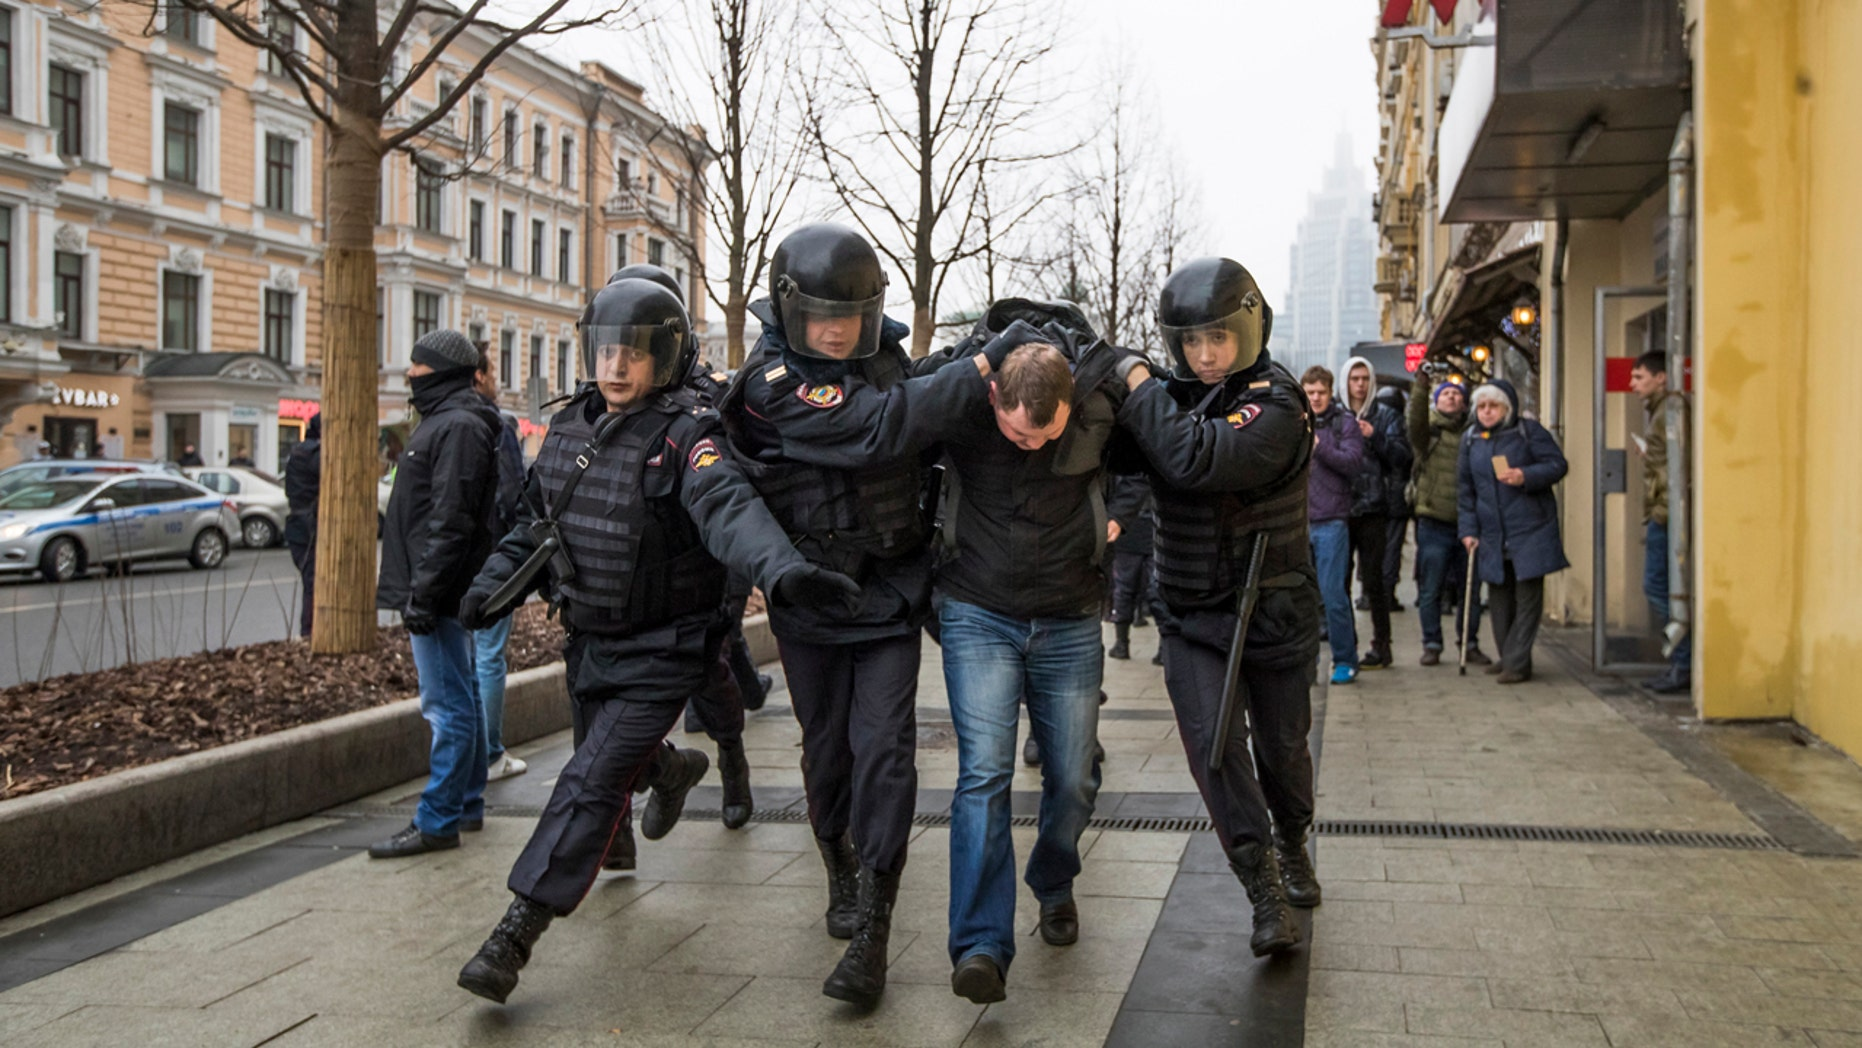 Police officers detain a man in the main street in Moscow, Russia, Sunday, April 2, 2017.